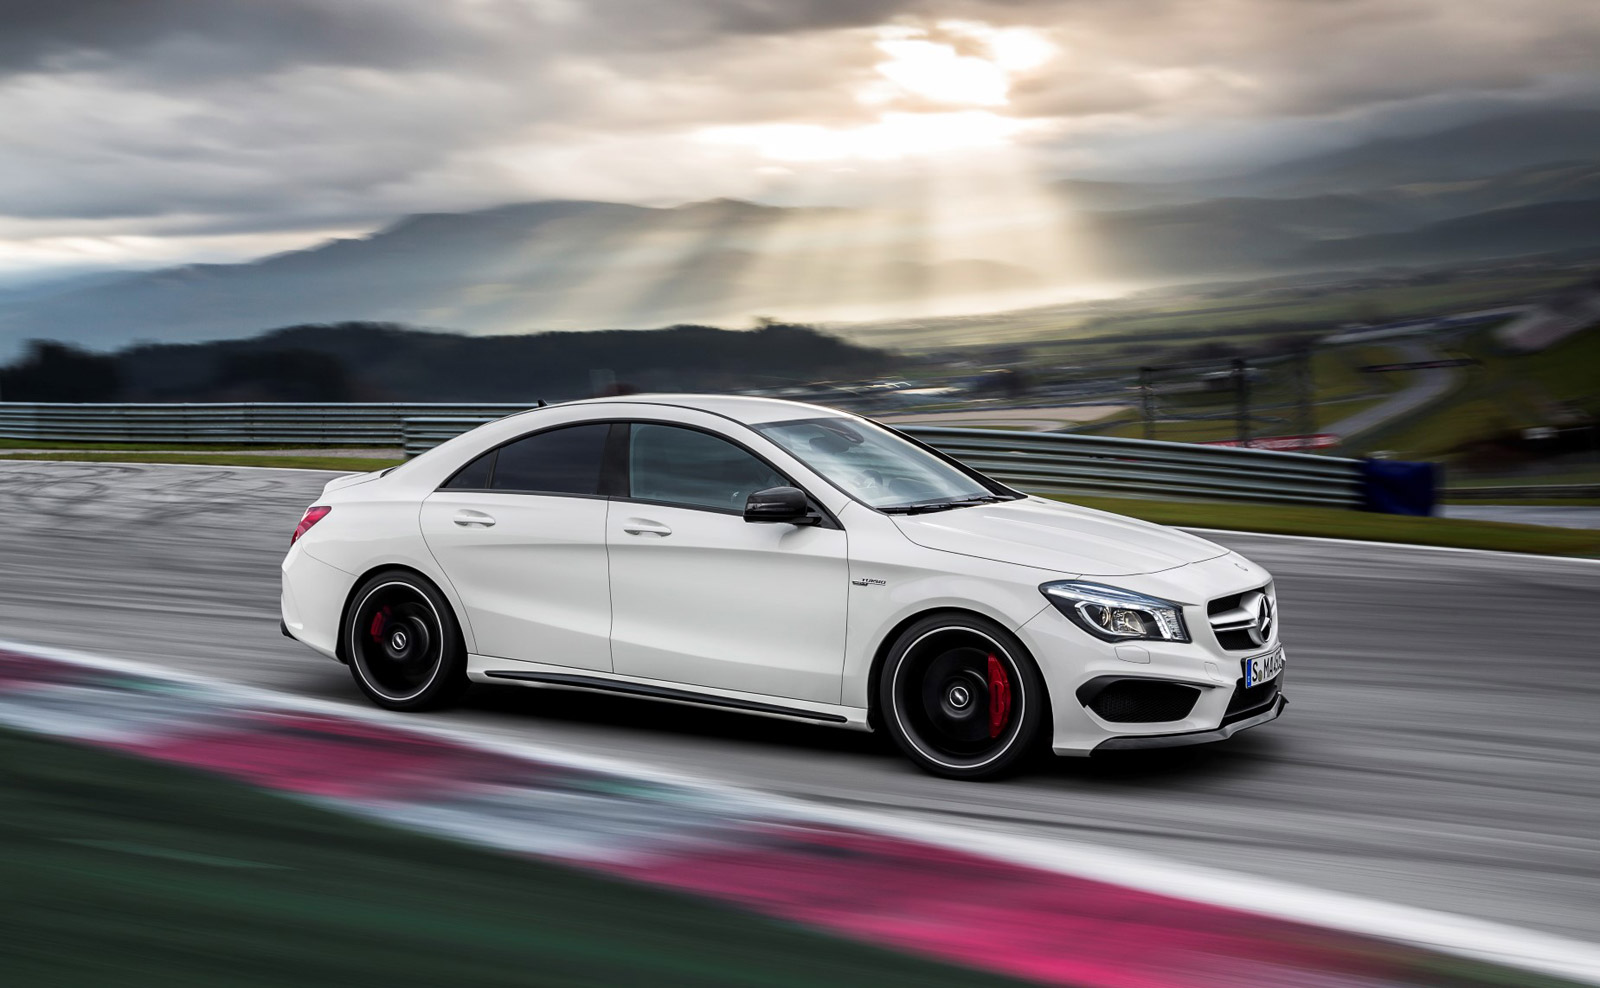 Mercedes Benz mercedes benz cla 45 : 2014 Mercedes-Benz CLA45 AMG: Best Car To Buy 2014 Nominee